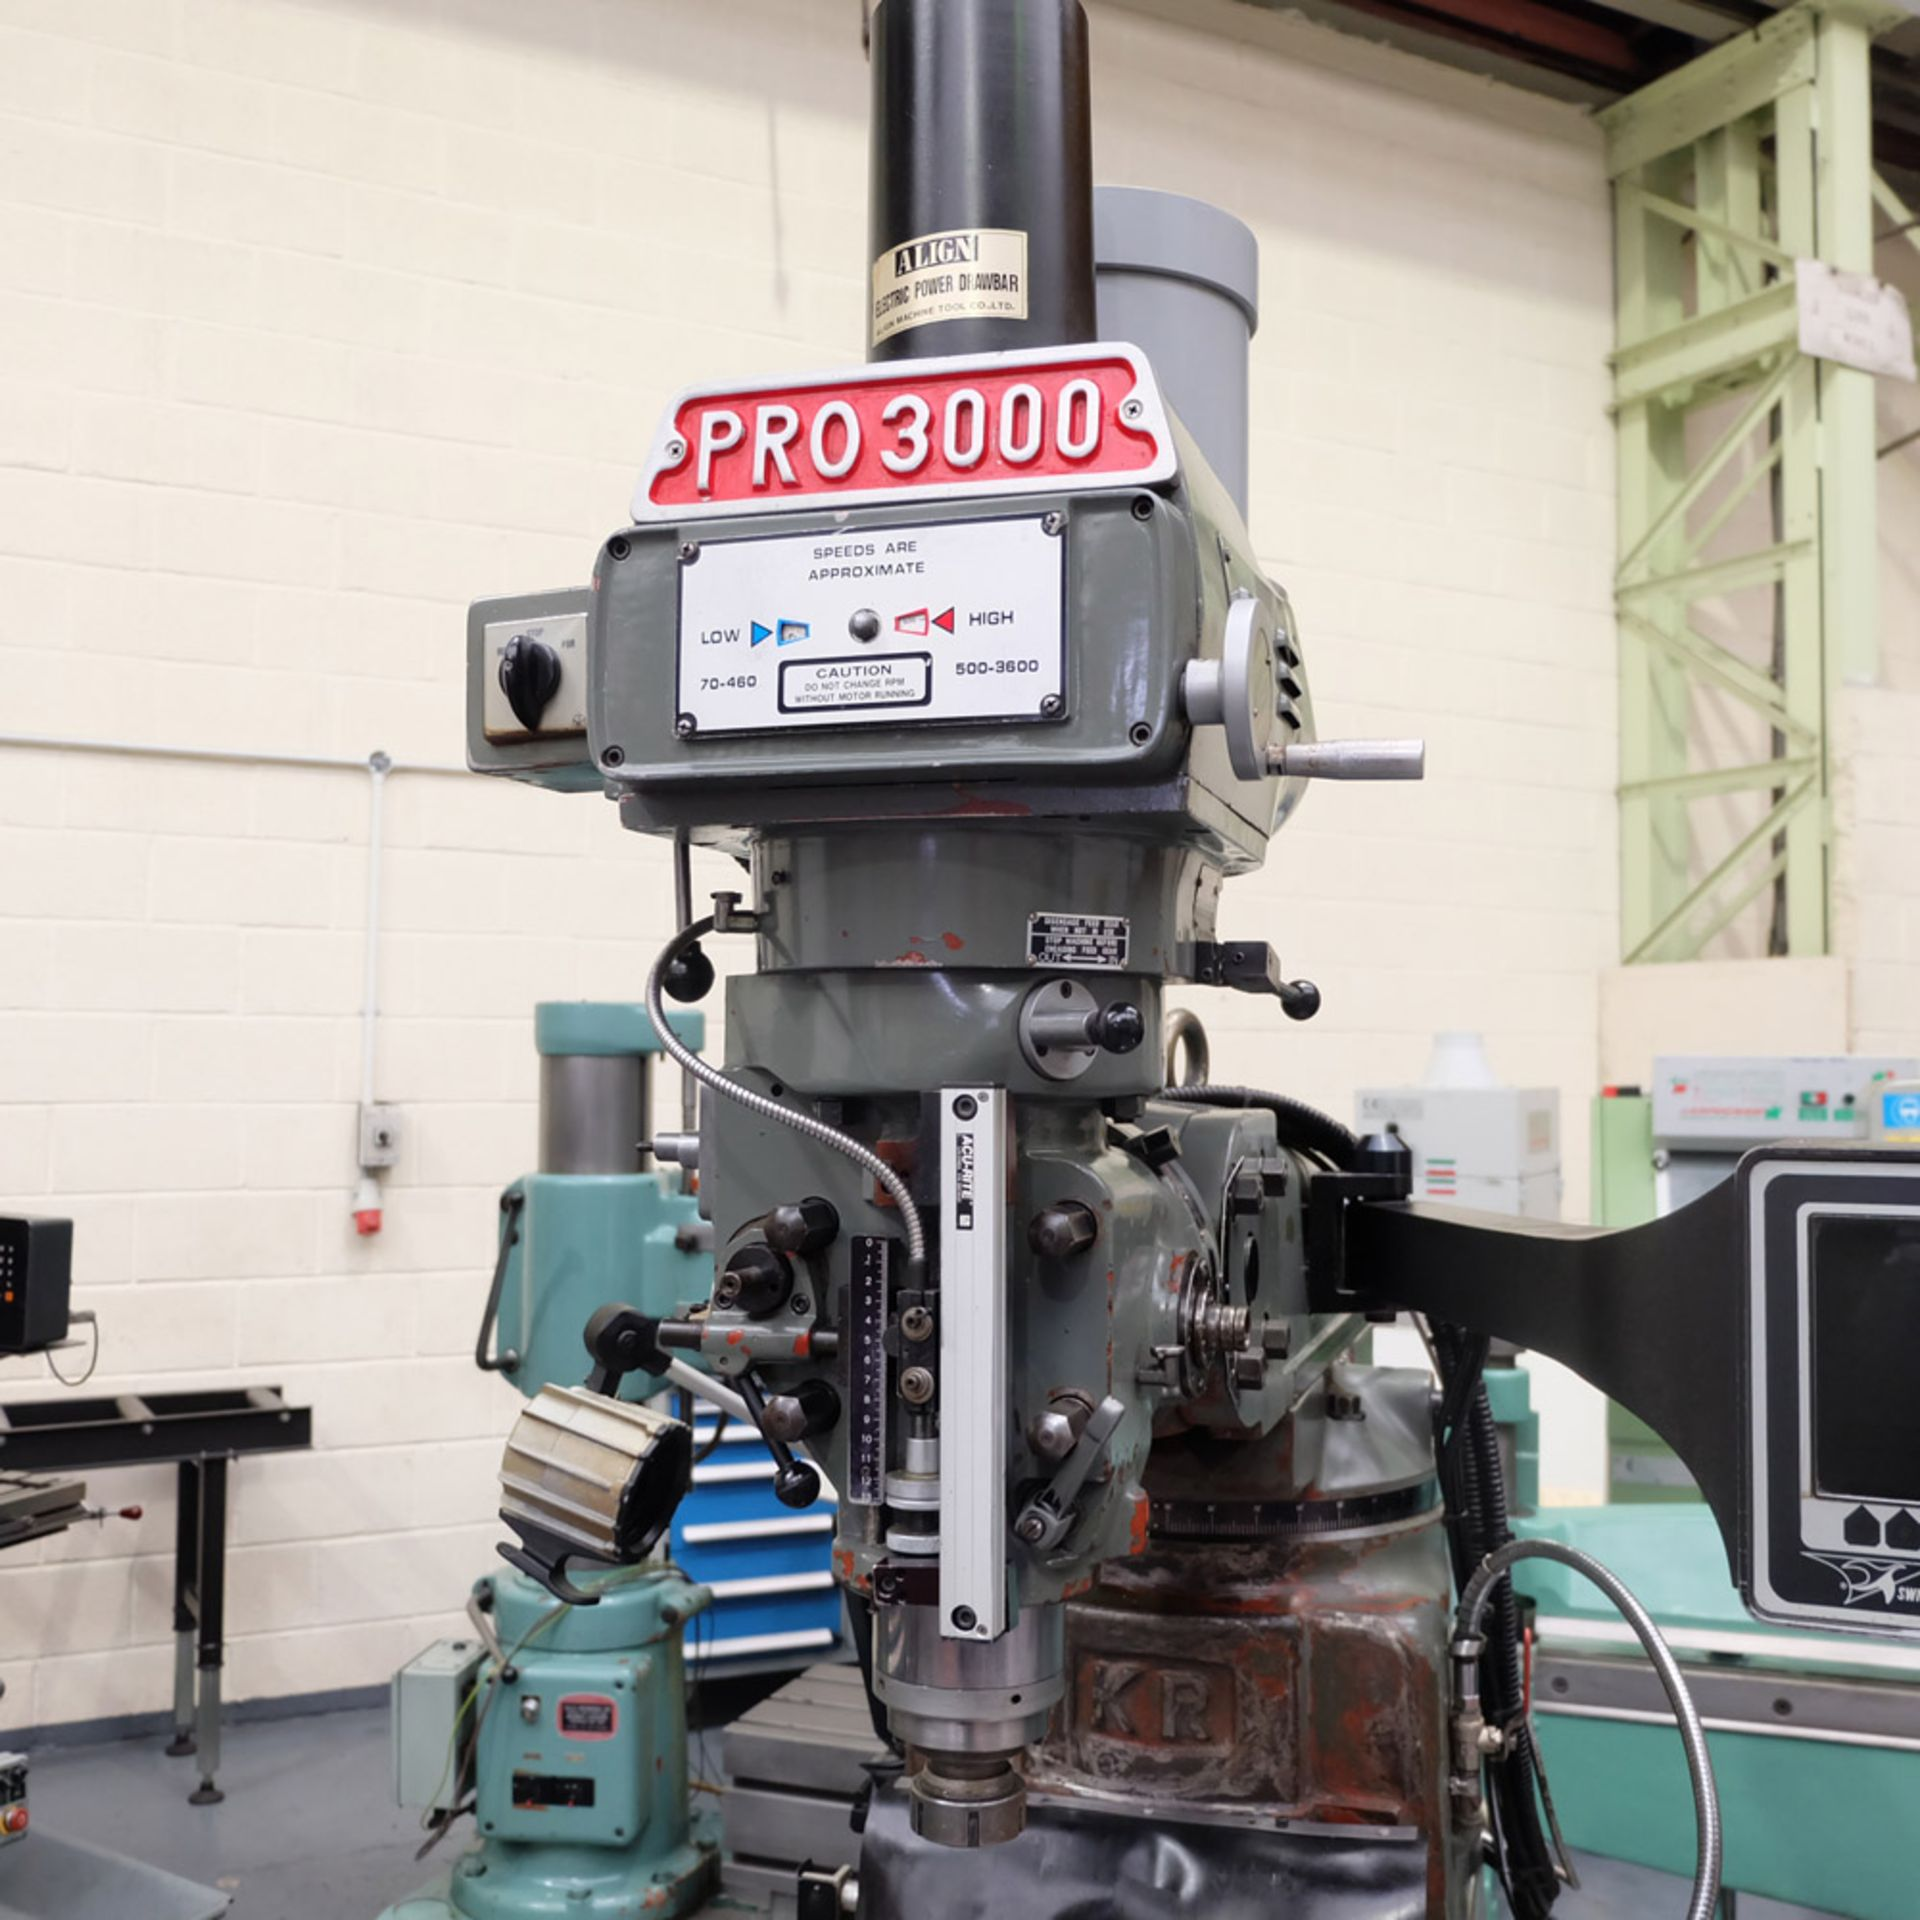 XYZ PRO 3000 Two Axis CNC Milling Machine.ProtoTrak MX2 Two Axis Programmable Control. - Image 3 of 9